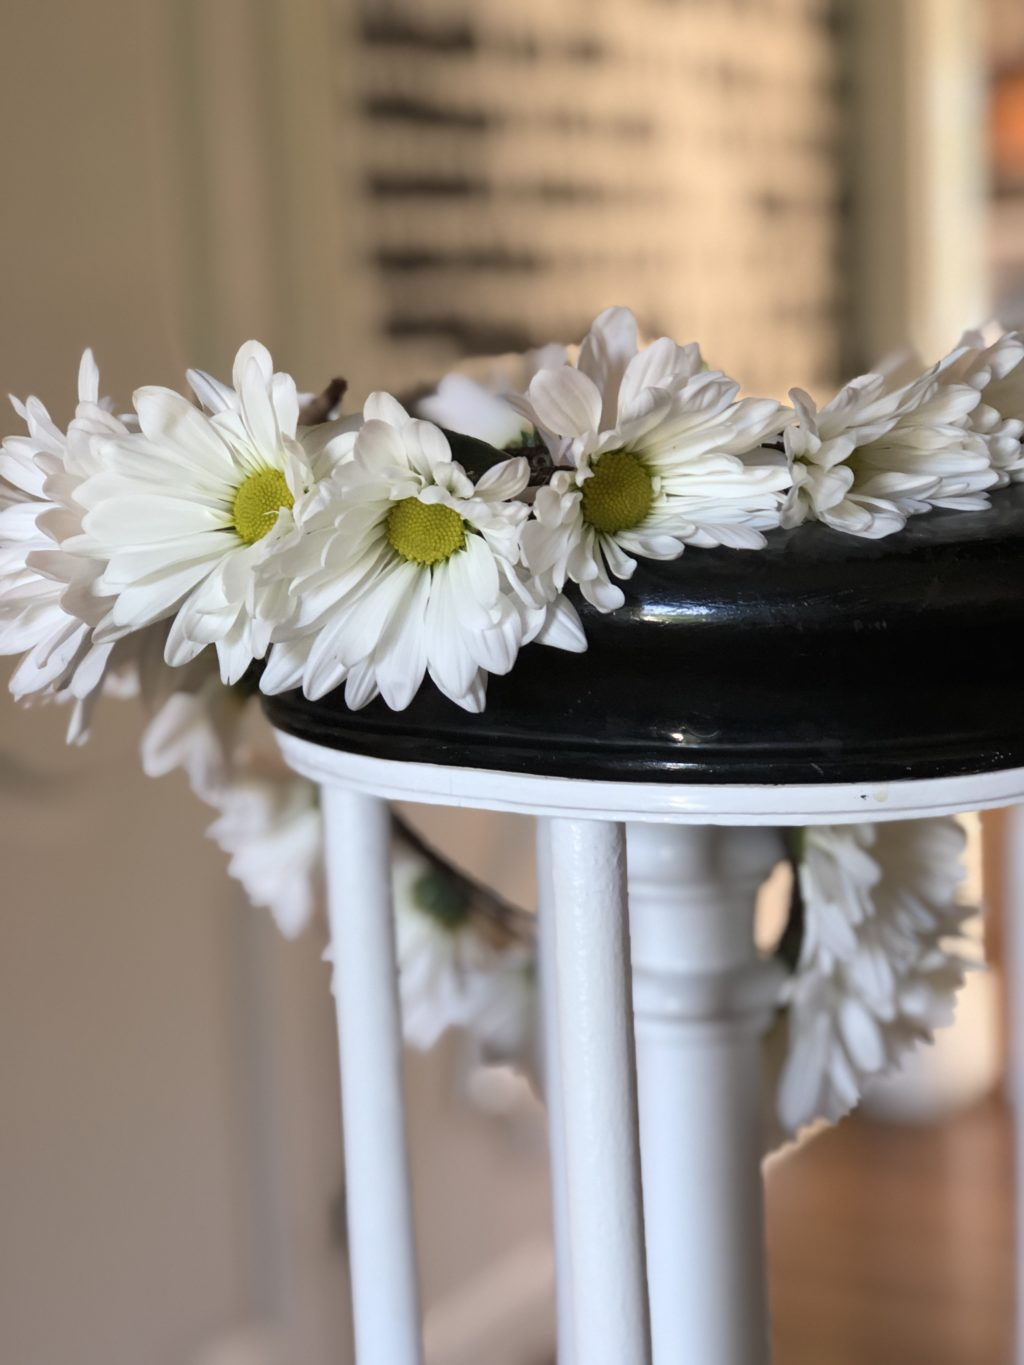 Flowers for a very special baby shower